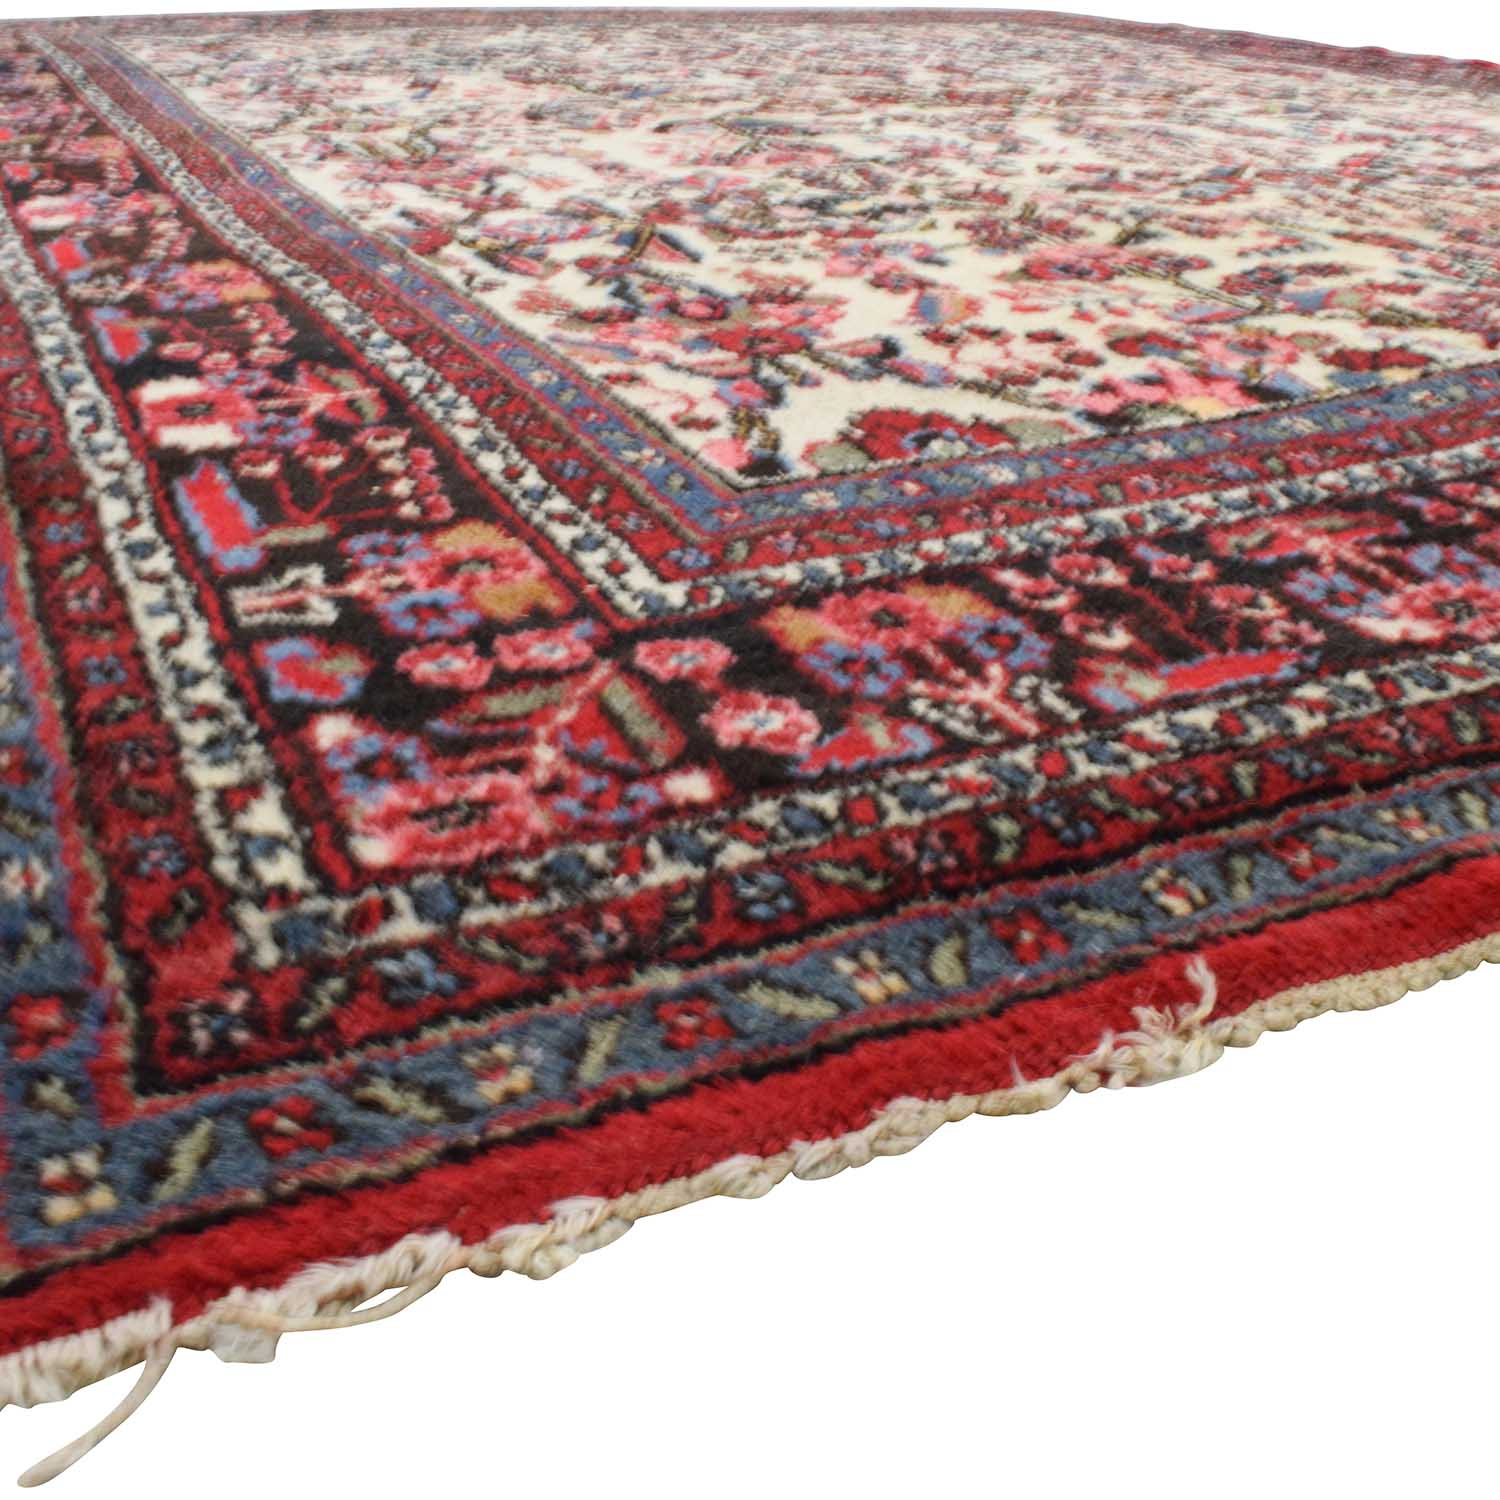 Handmade Vintage Red Persian Rug nyc